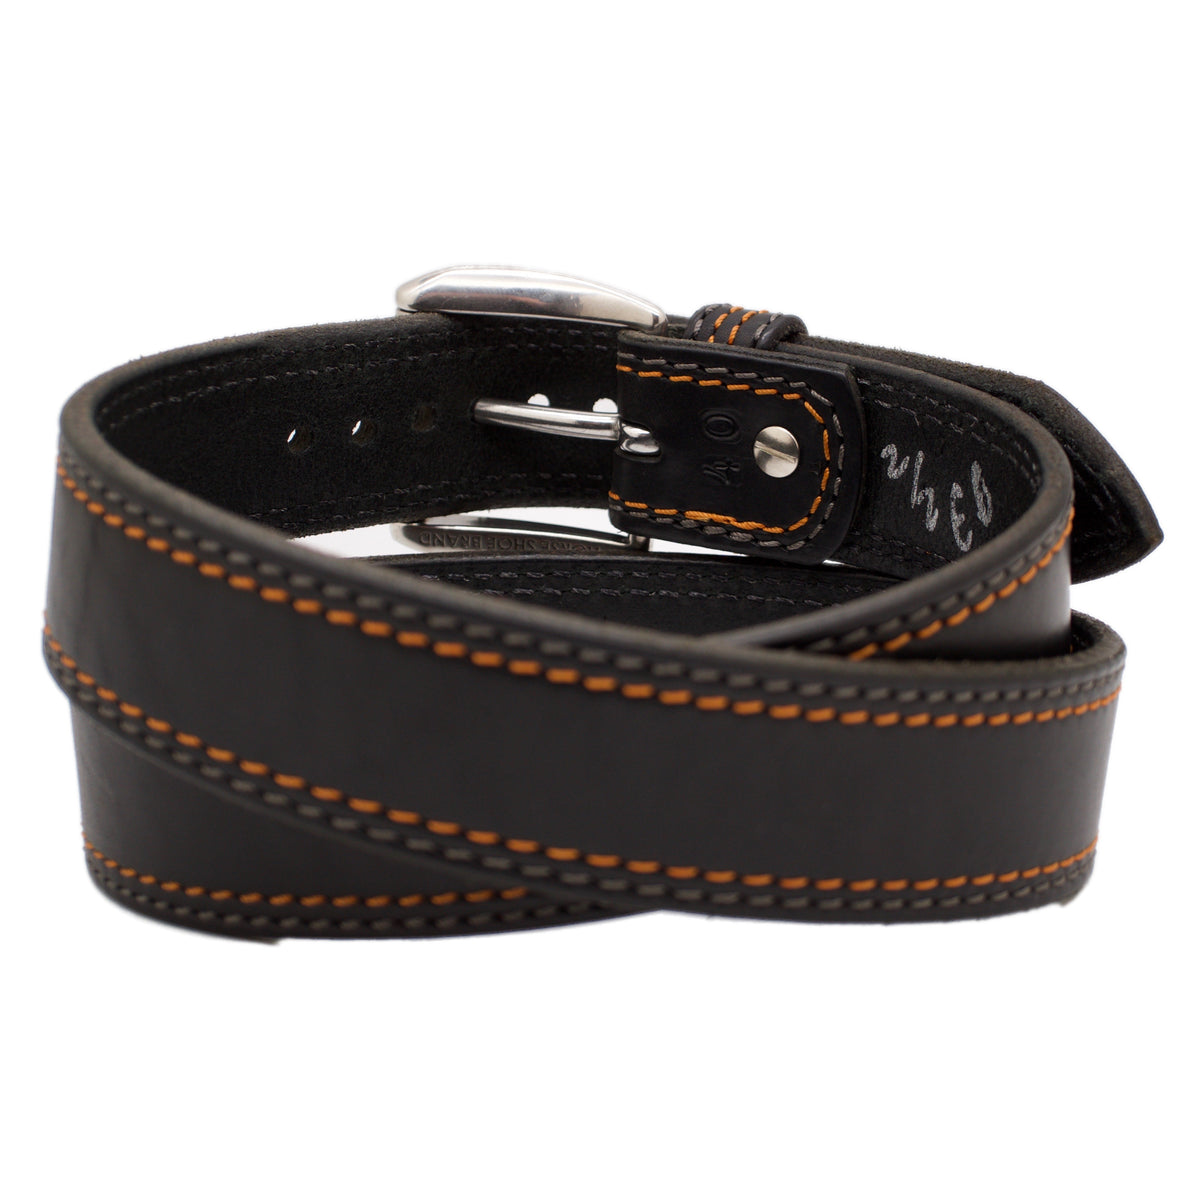 The STURGIS Wide 1.75 Leather Belt